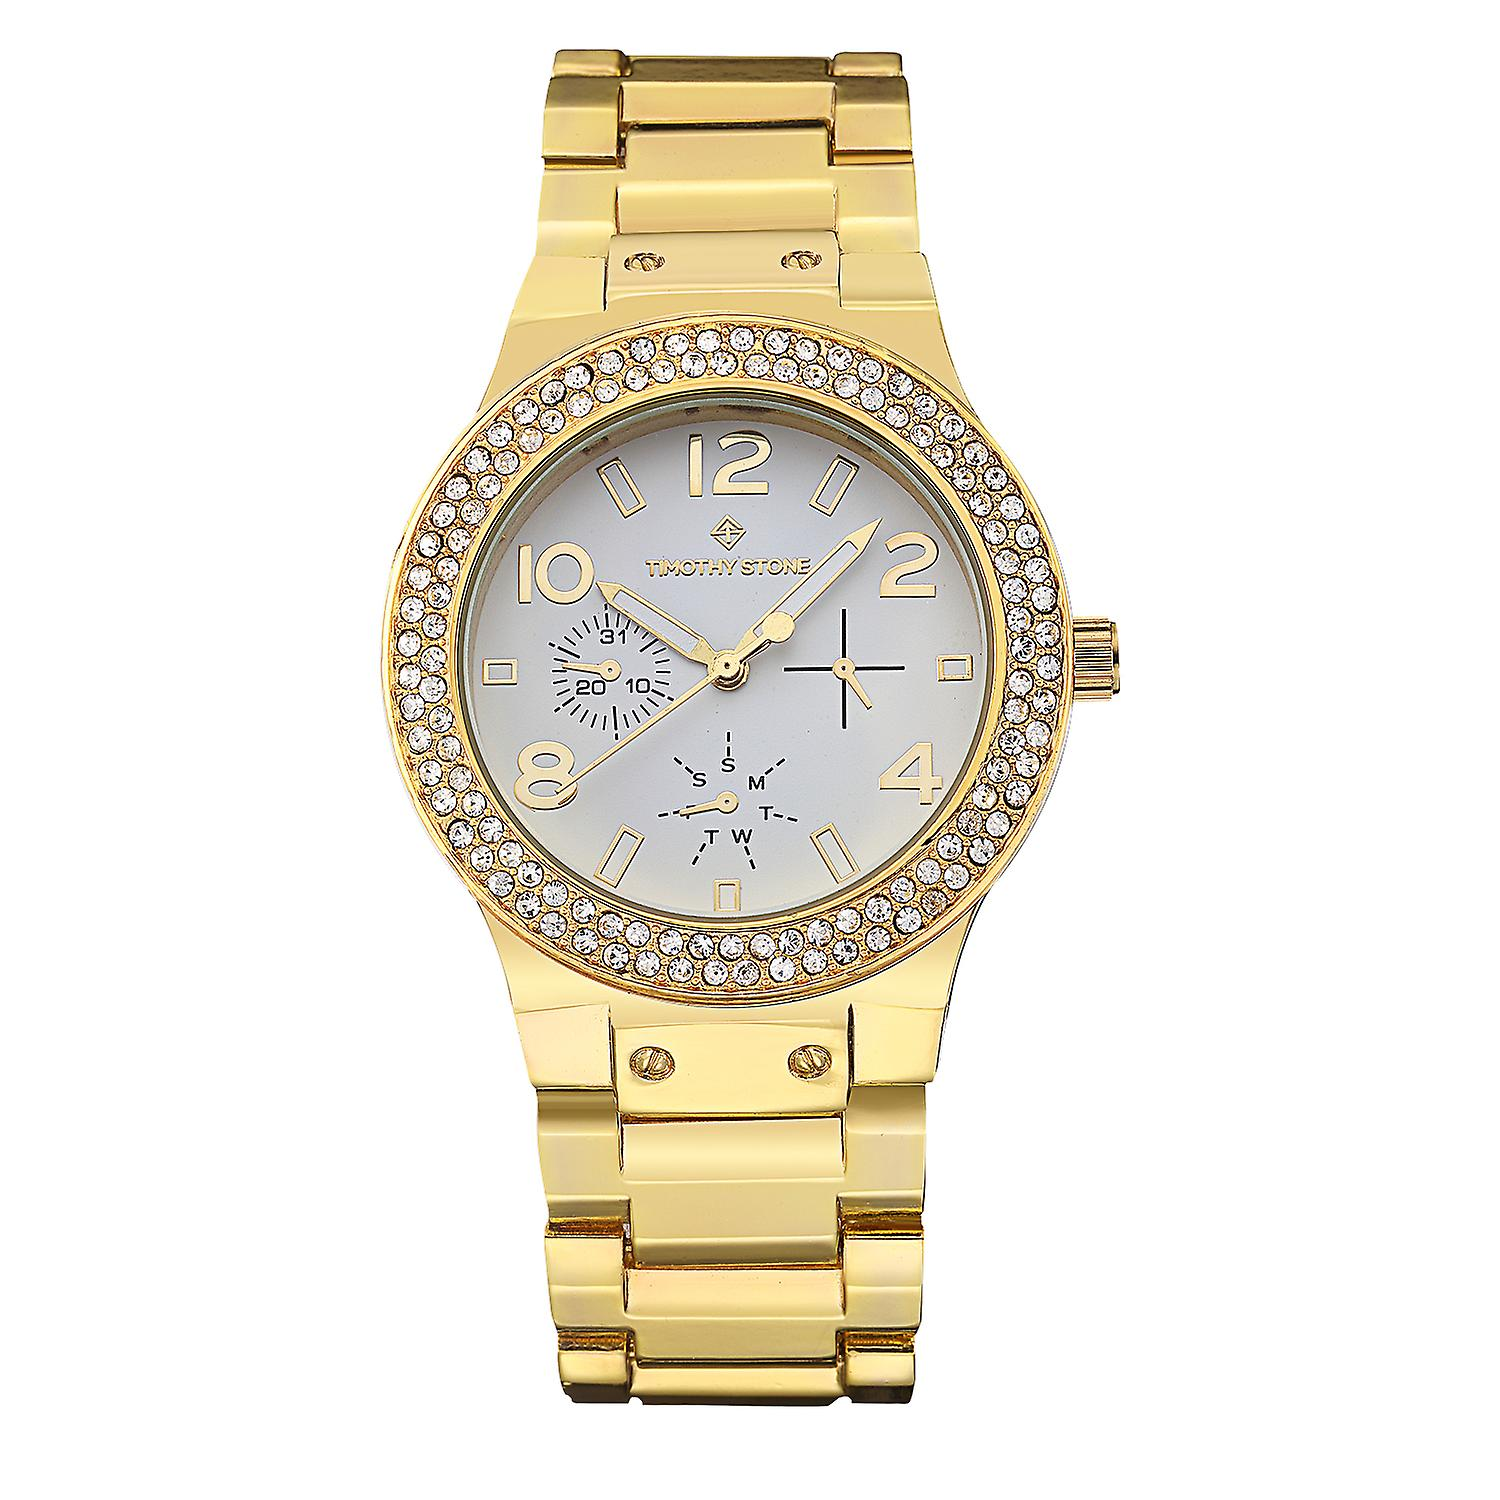 Timothy Stone Women's FA�ON-STAINLESS Gold-Tone Watch